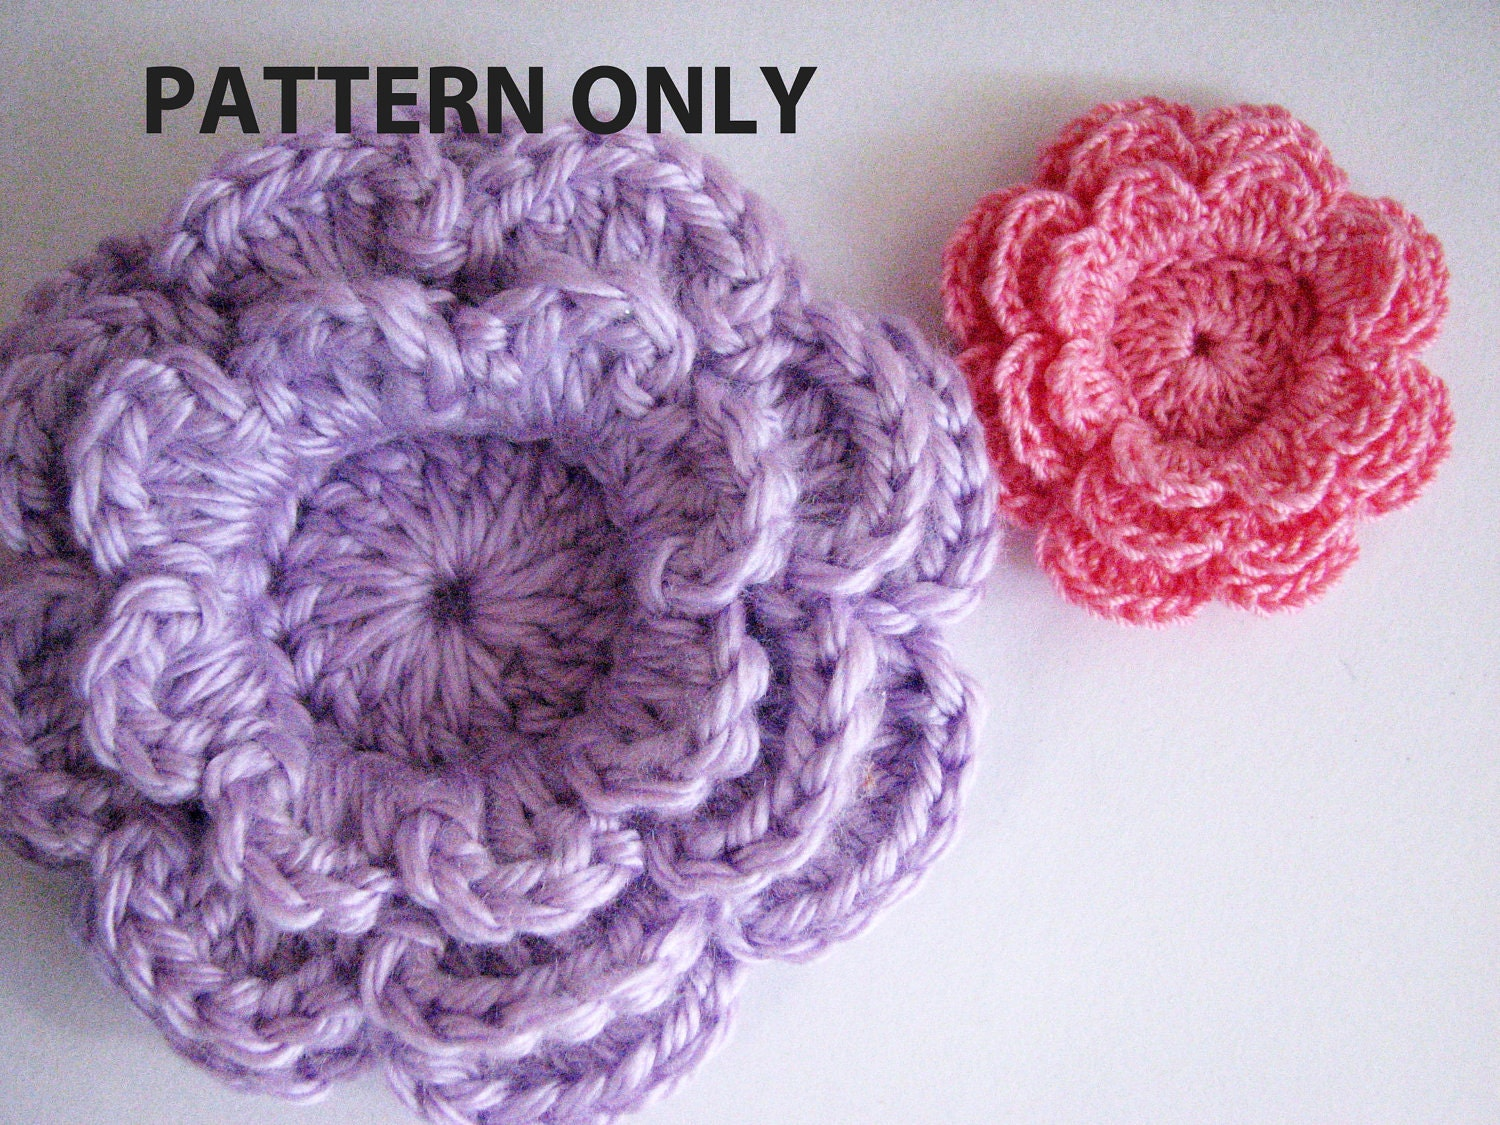 Crochet Flower Pattern Three Layer Flower with 8 Petals